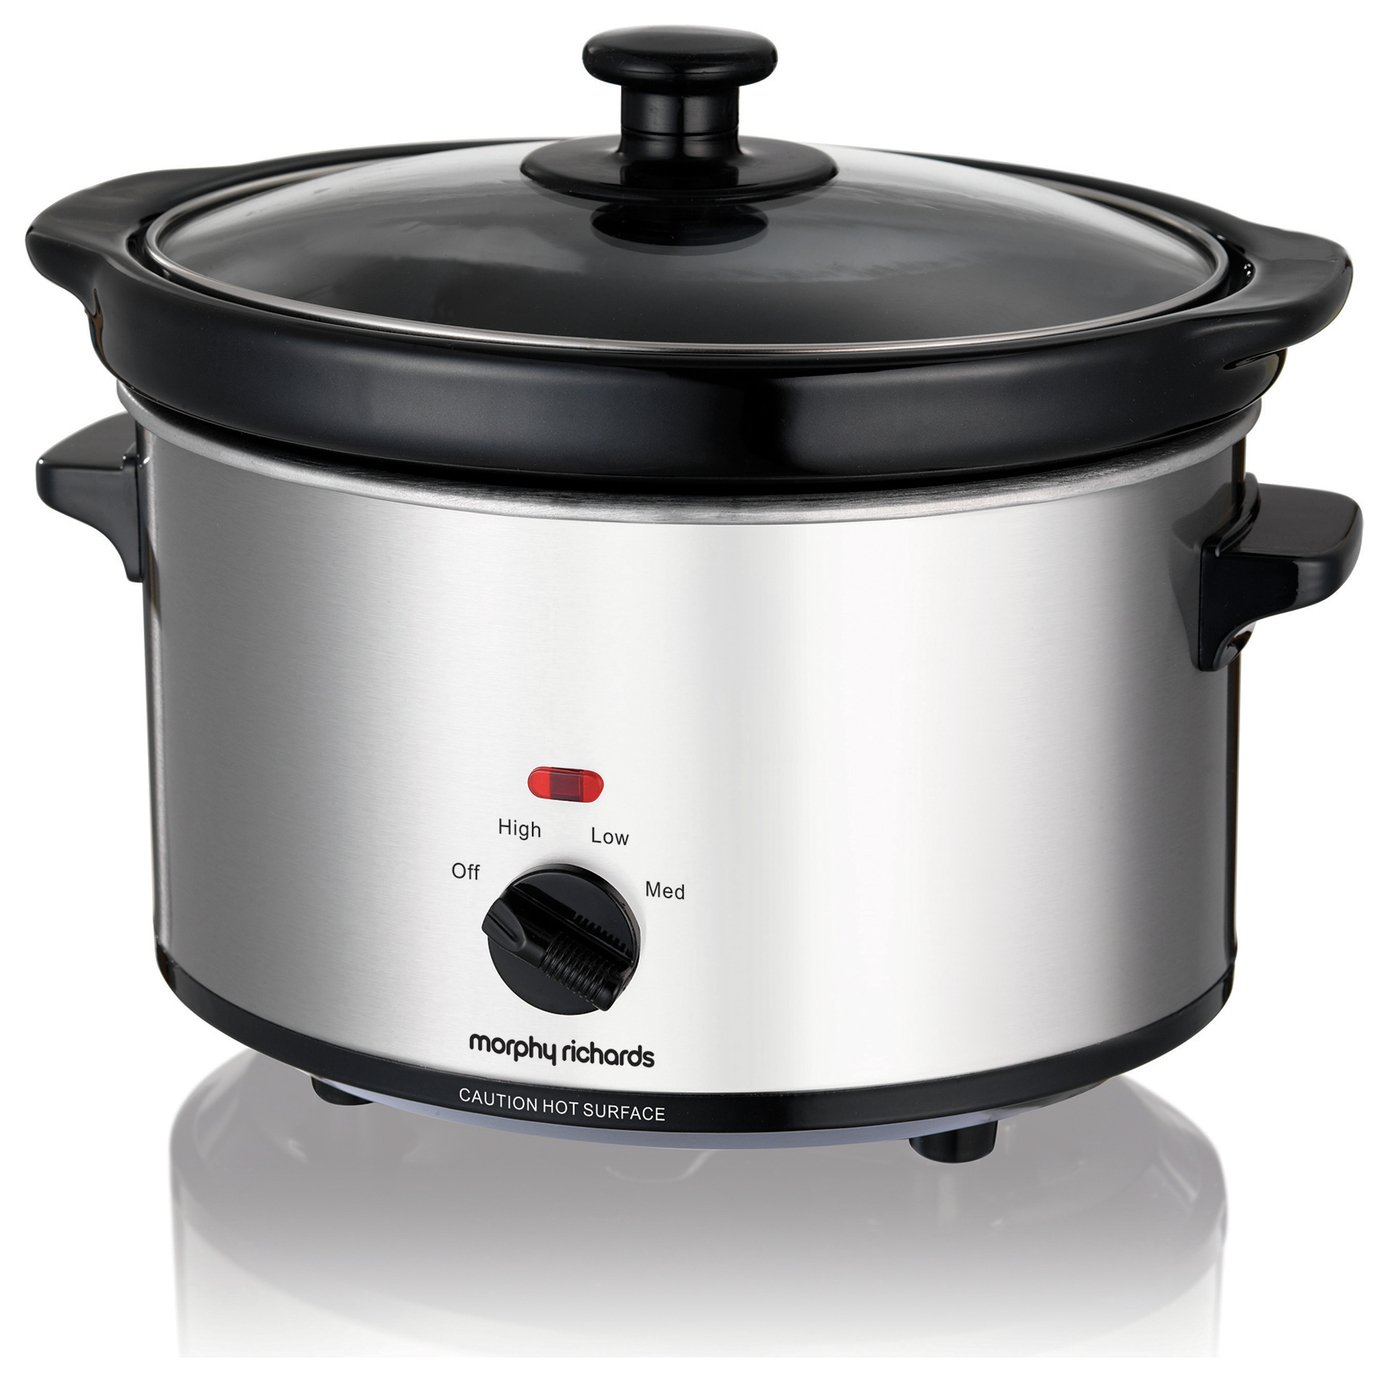 'Morphy Richards 460251 2.5l Slow Cooker - Stainless Steel